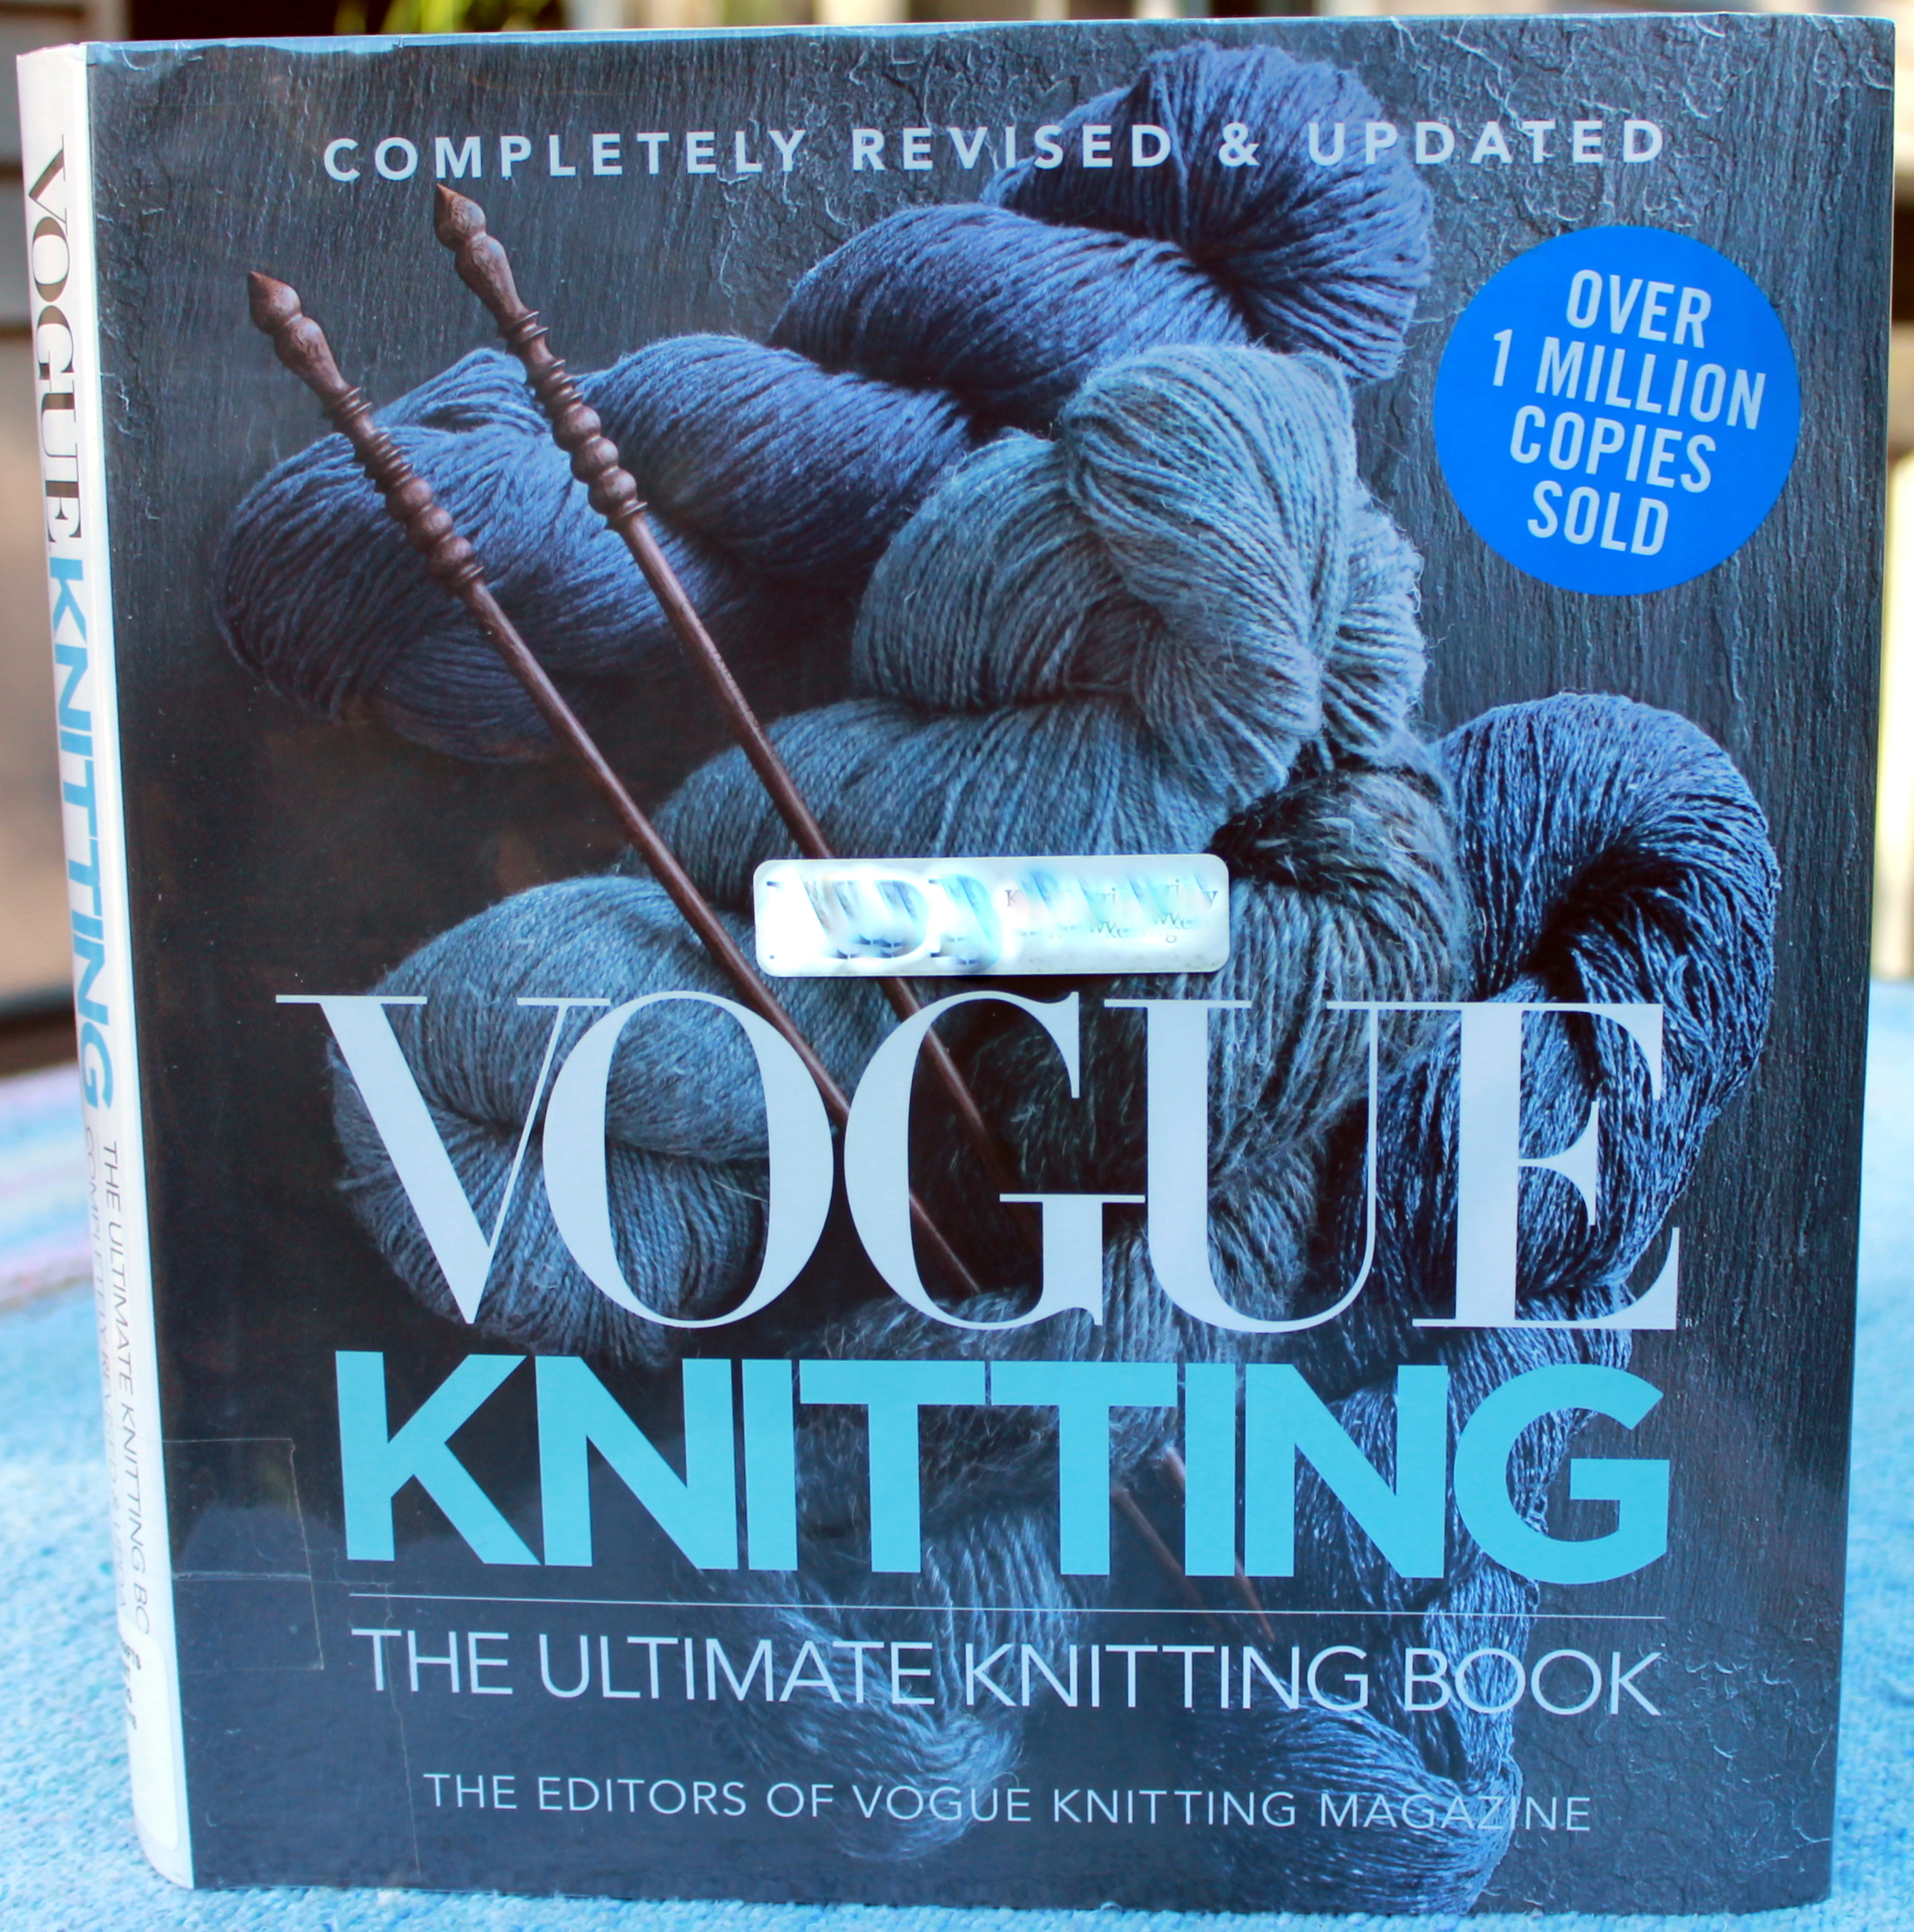 Vogue knitting book any